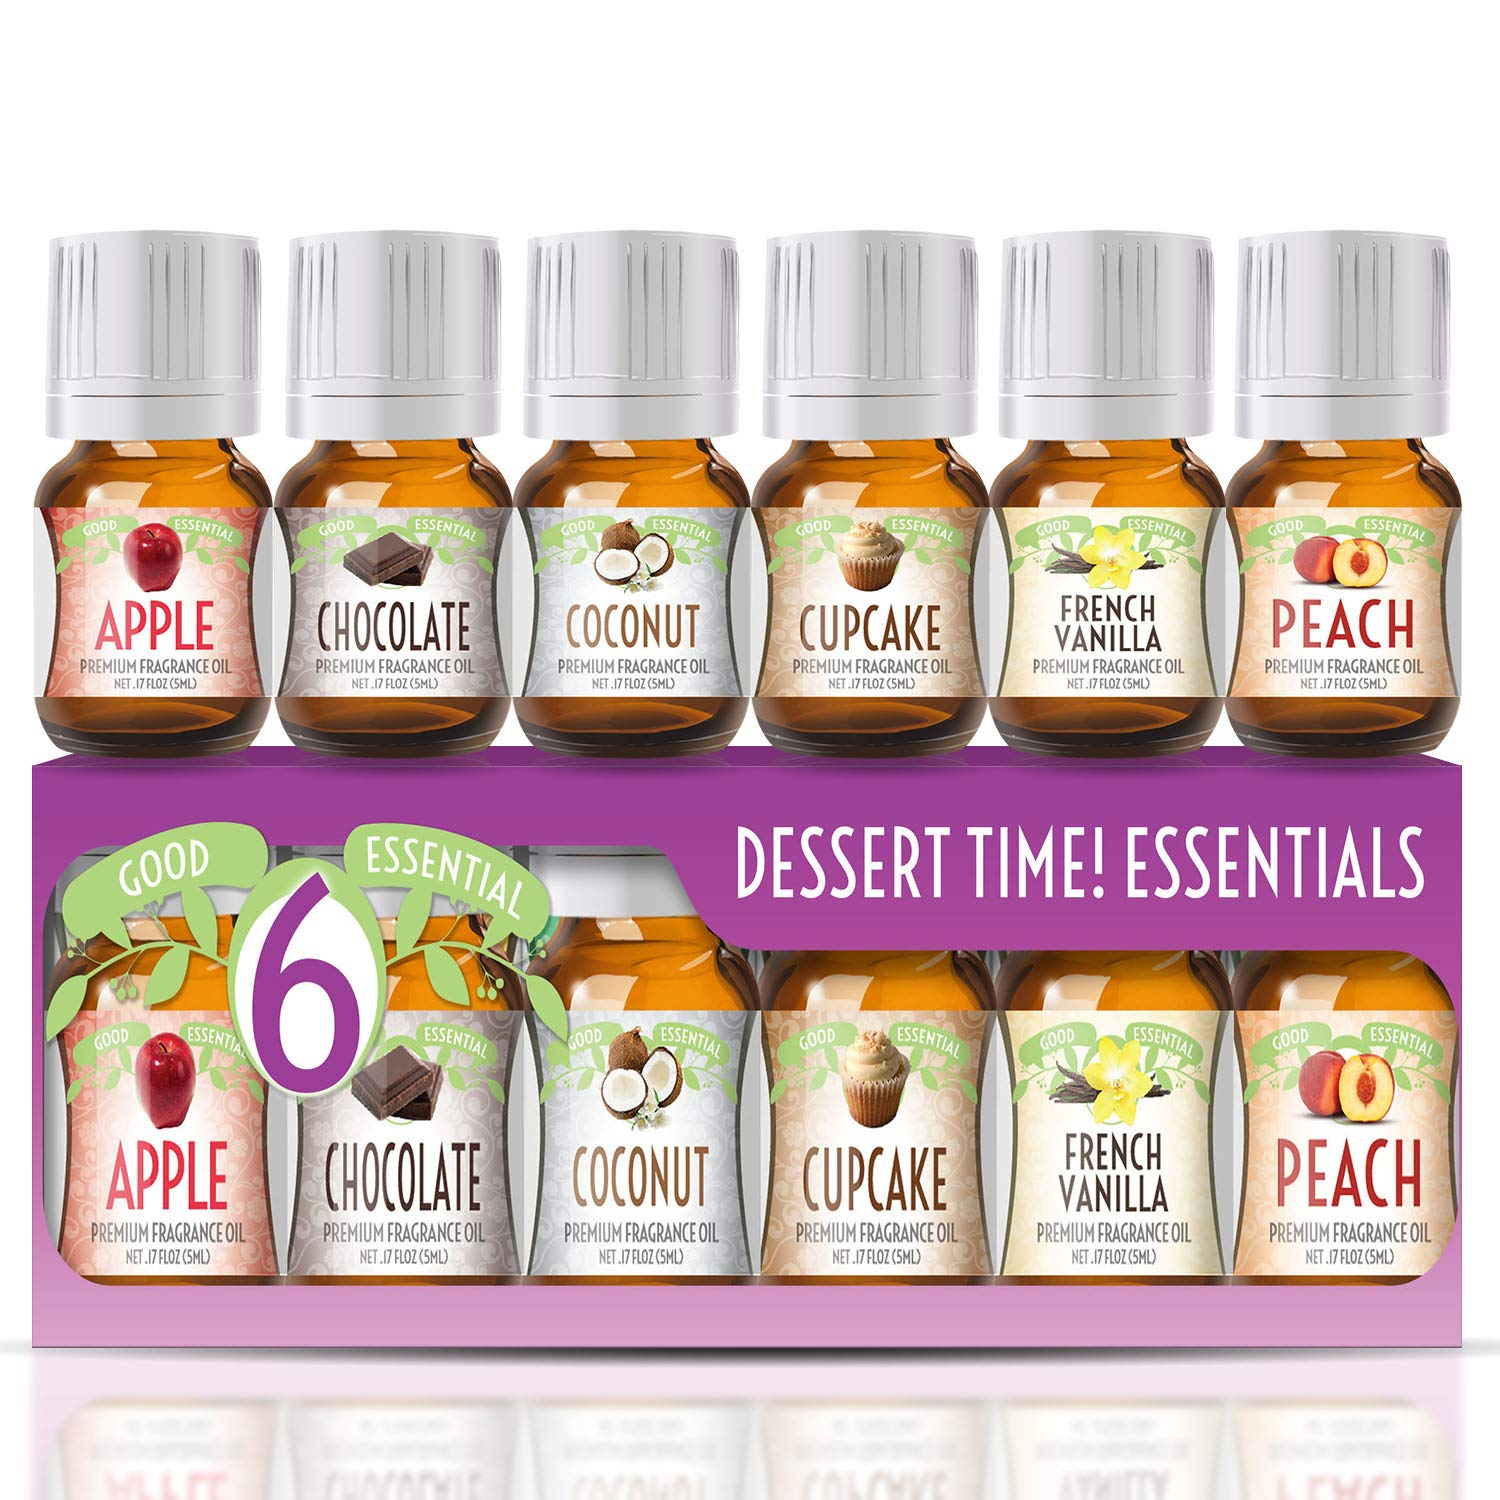 Fragrance Oils Set of 6 Scented Oils from Good Essential- Apple Oil, Chocolate Oil, Coconut Oil, French Vanilla Oil, Peach Oil, Cupcake Oil: Aromatherapy, Perfume, Soaps, Candles, Slime, Lotions!